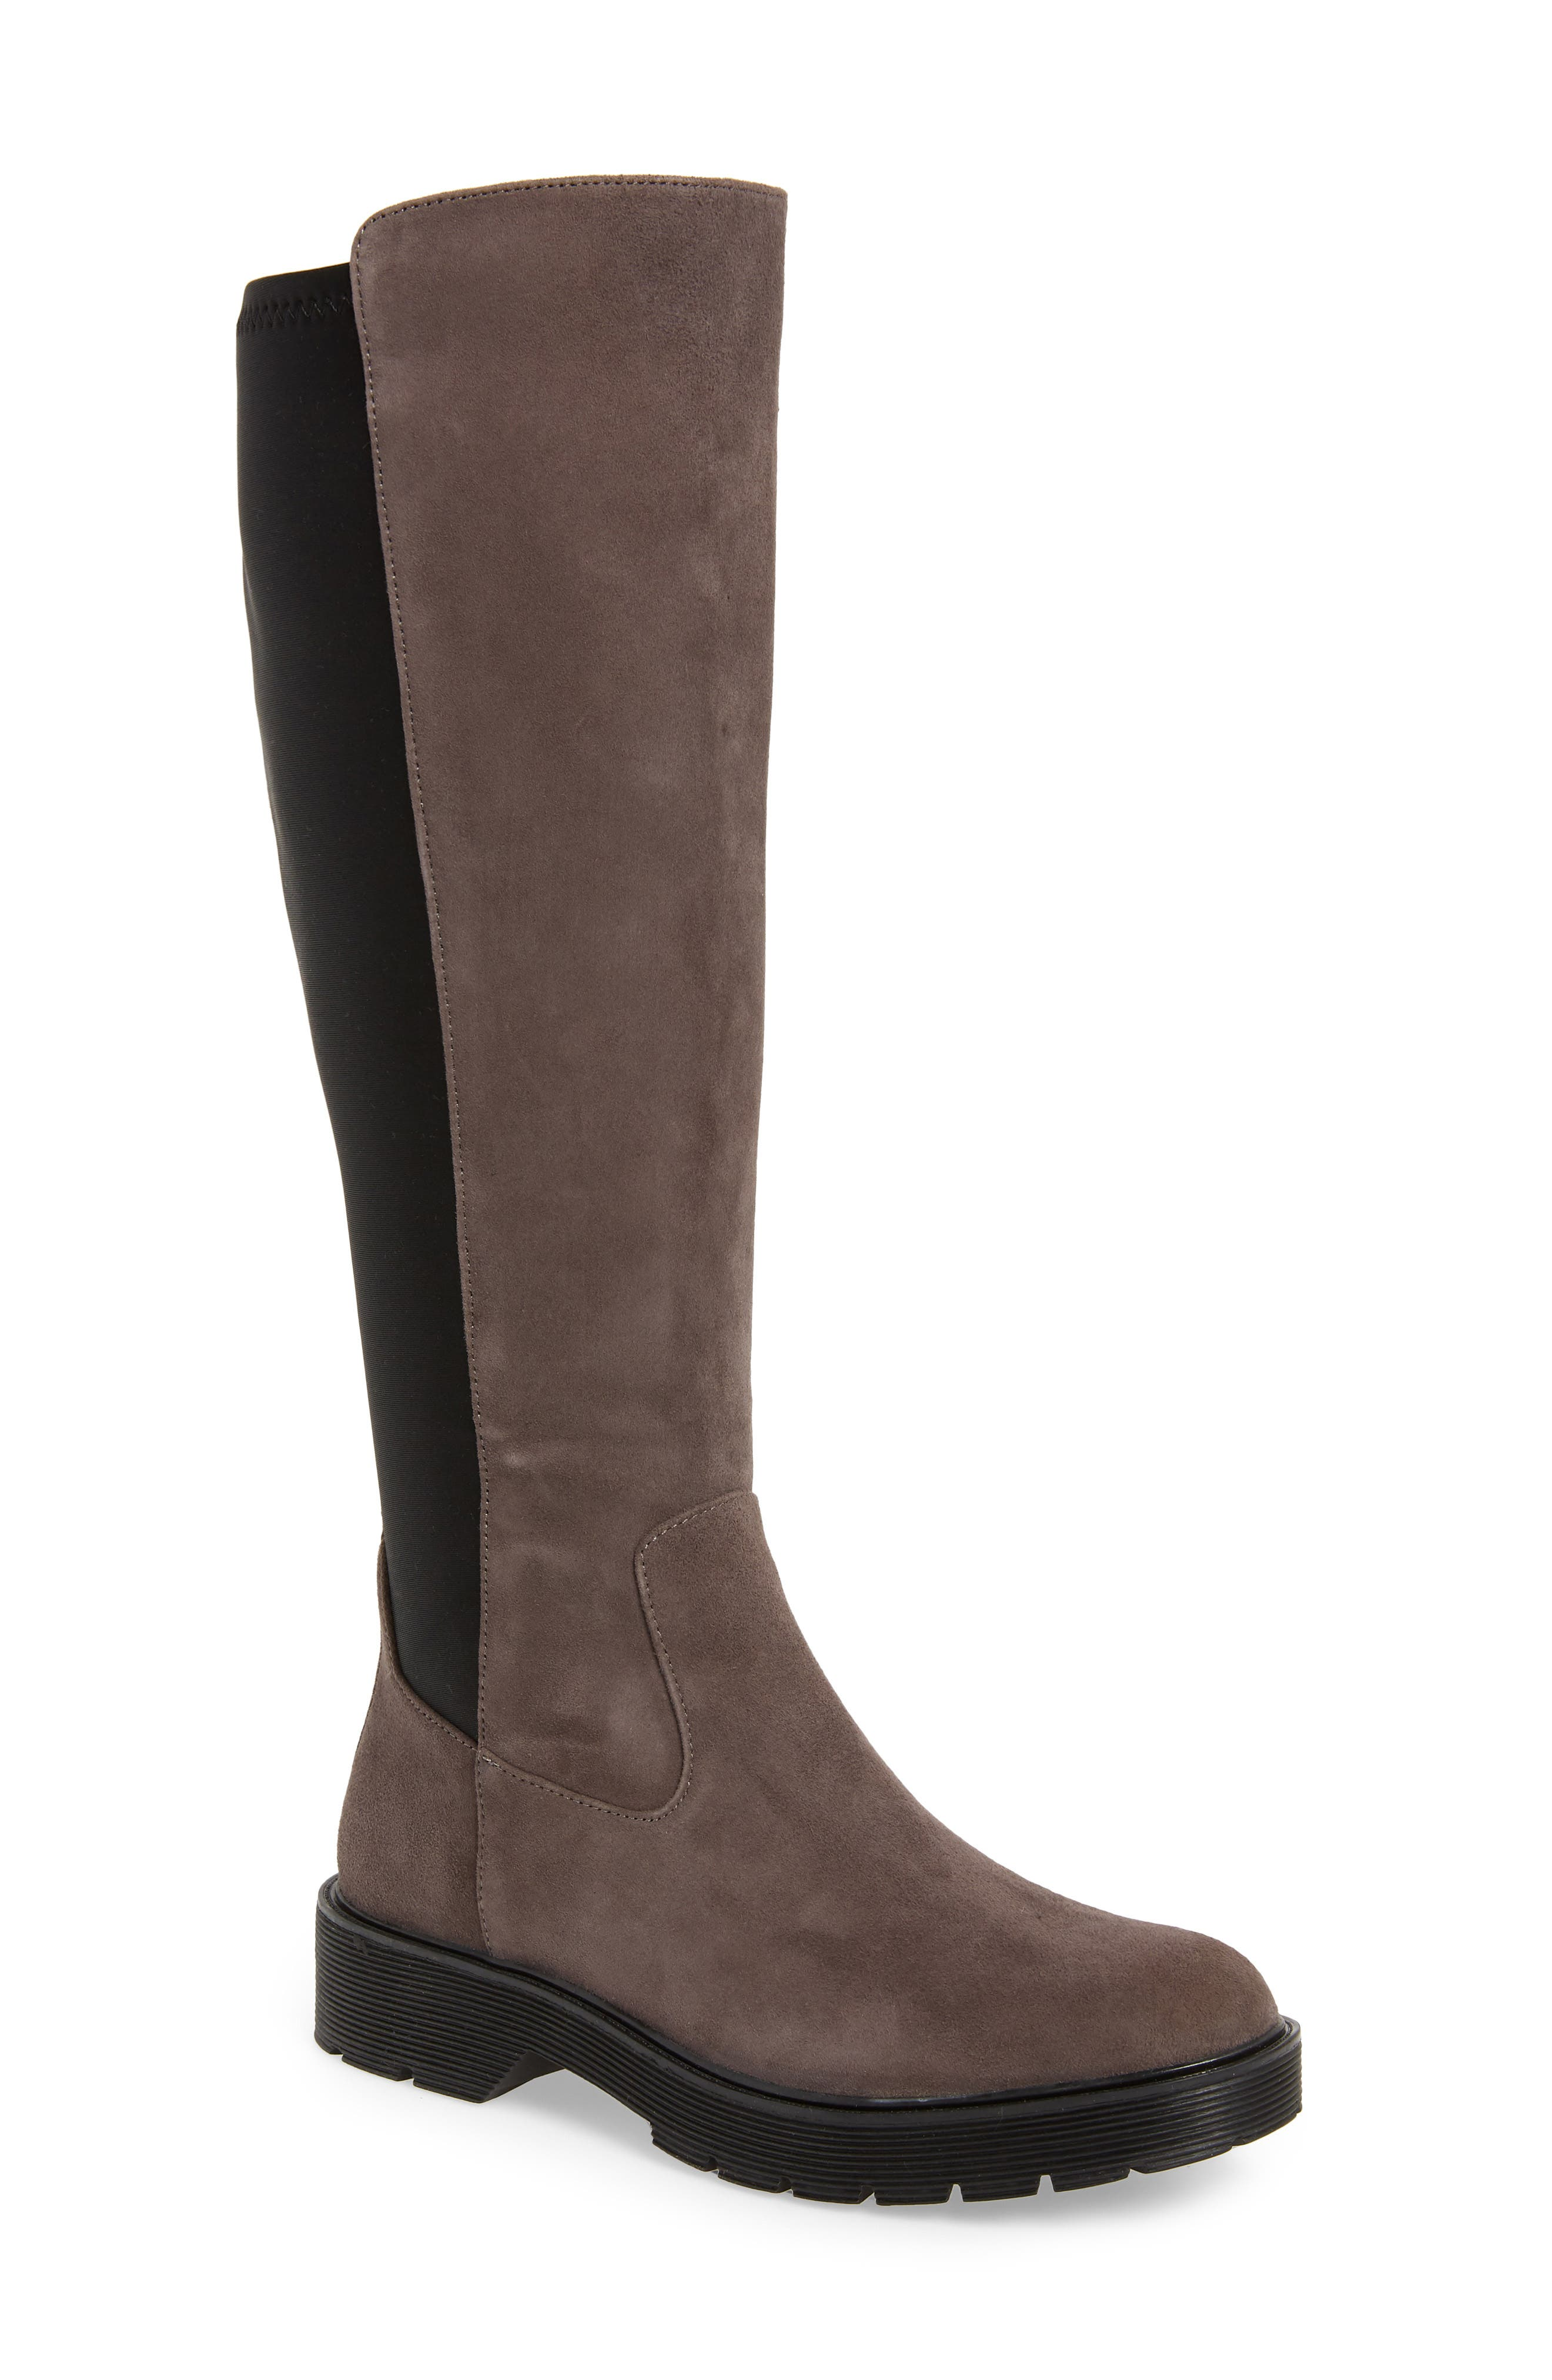 Themis Knee High Riding Boot, Main, color, DARK UTILITY/ BLACK SUEDE